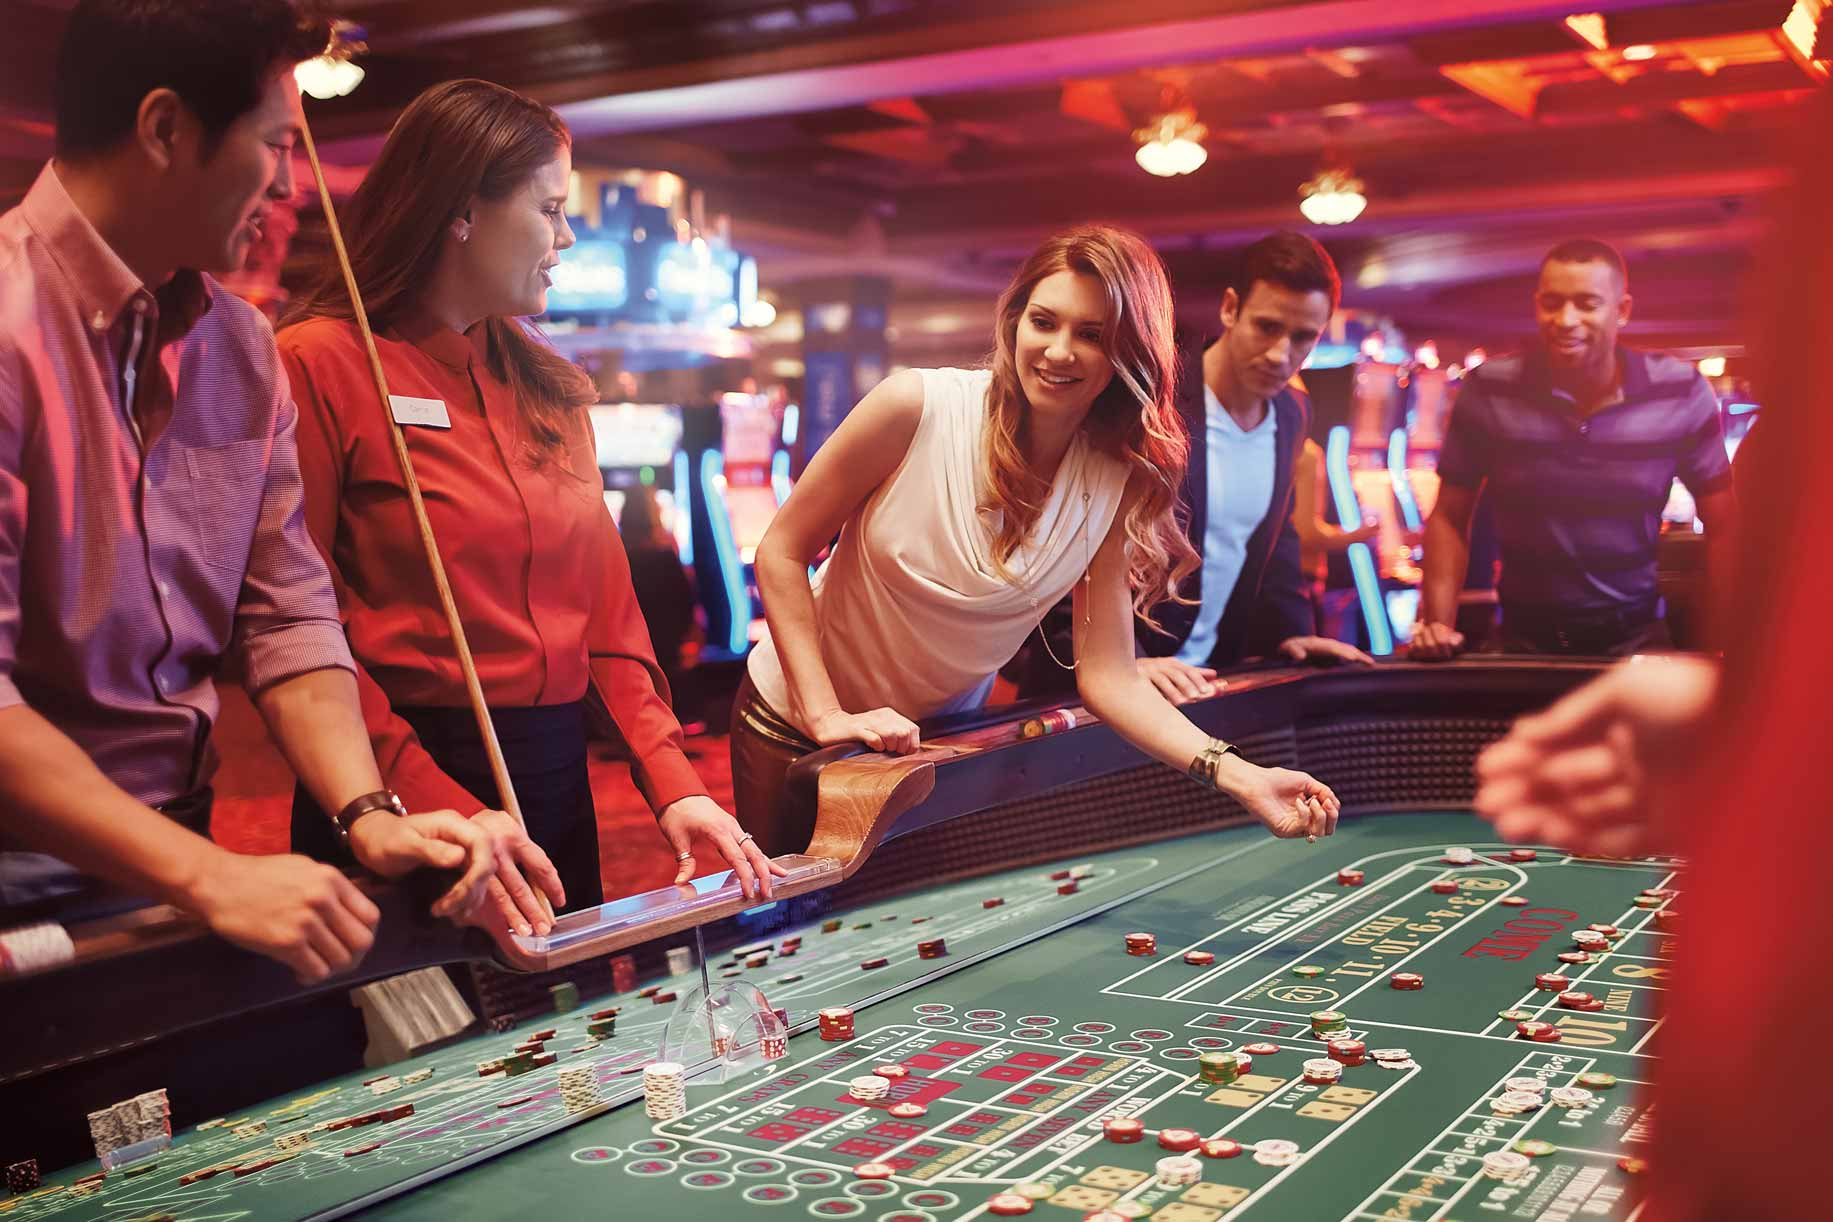 More About Gambling For Fun And Profit